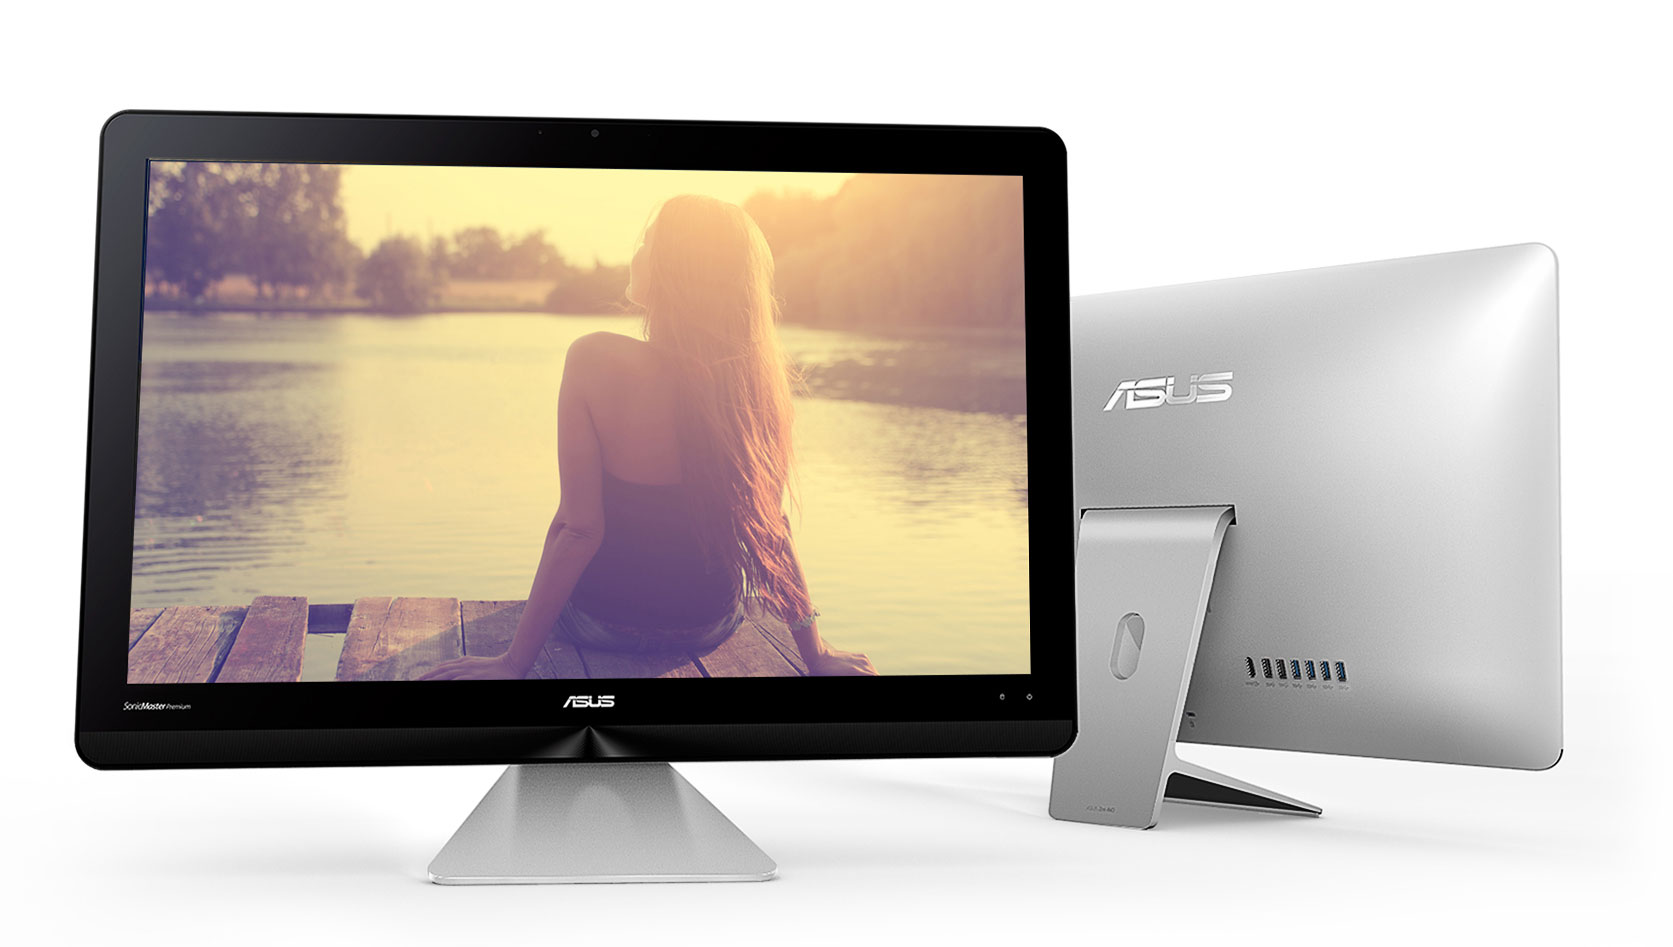 ASUS ALL-IN-ONE PCS BLUETOOTH WINDOWS 10 DRIVER DOWNLOAD